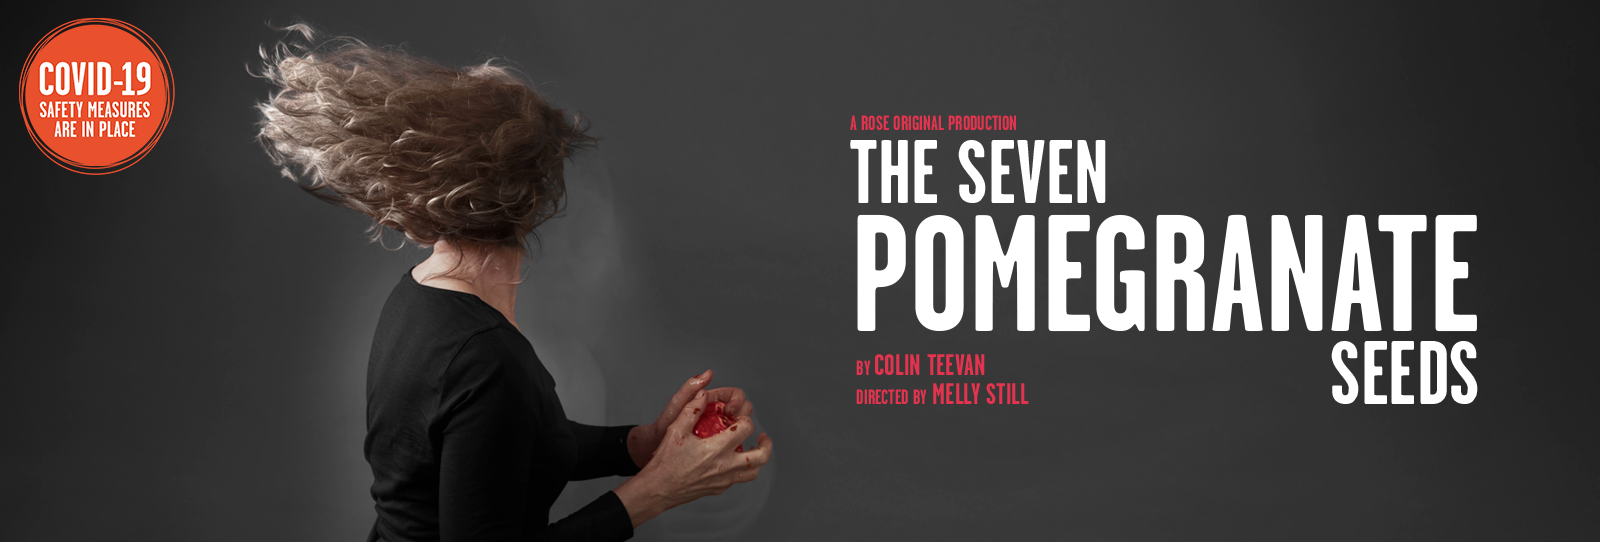 The Seven Pomegranate Seeds